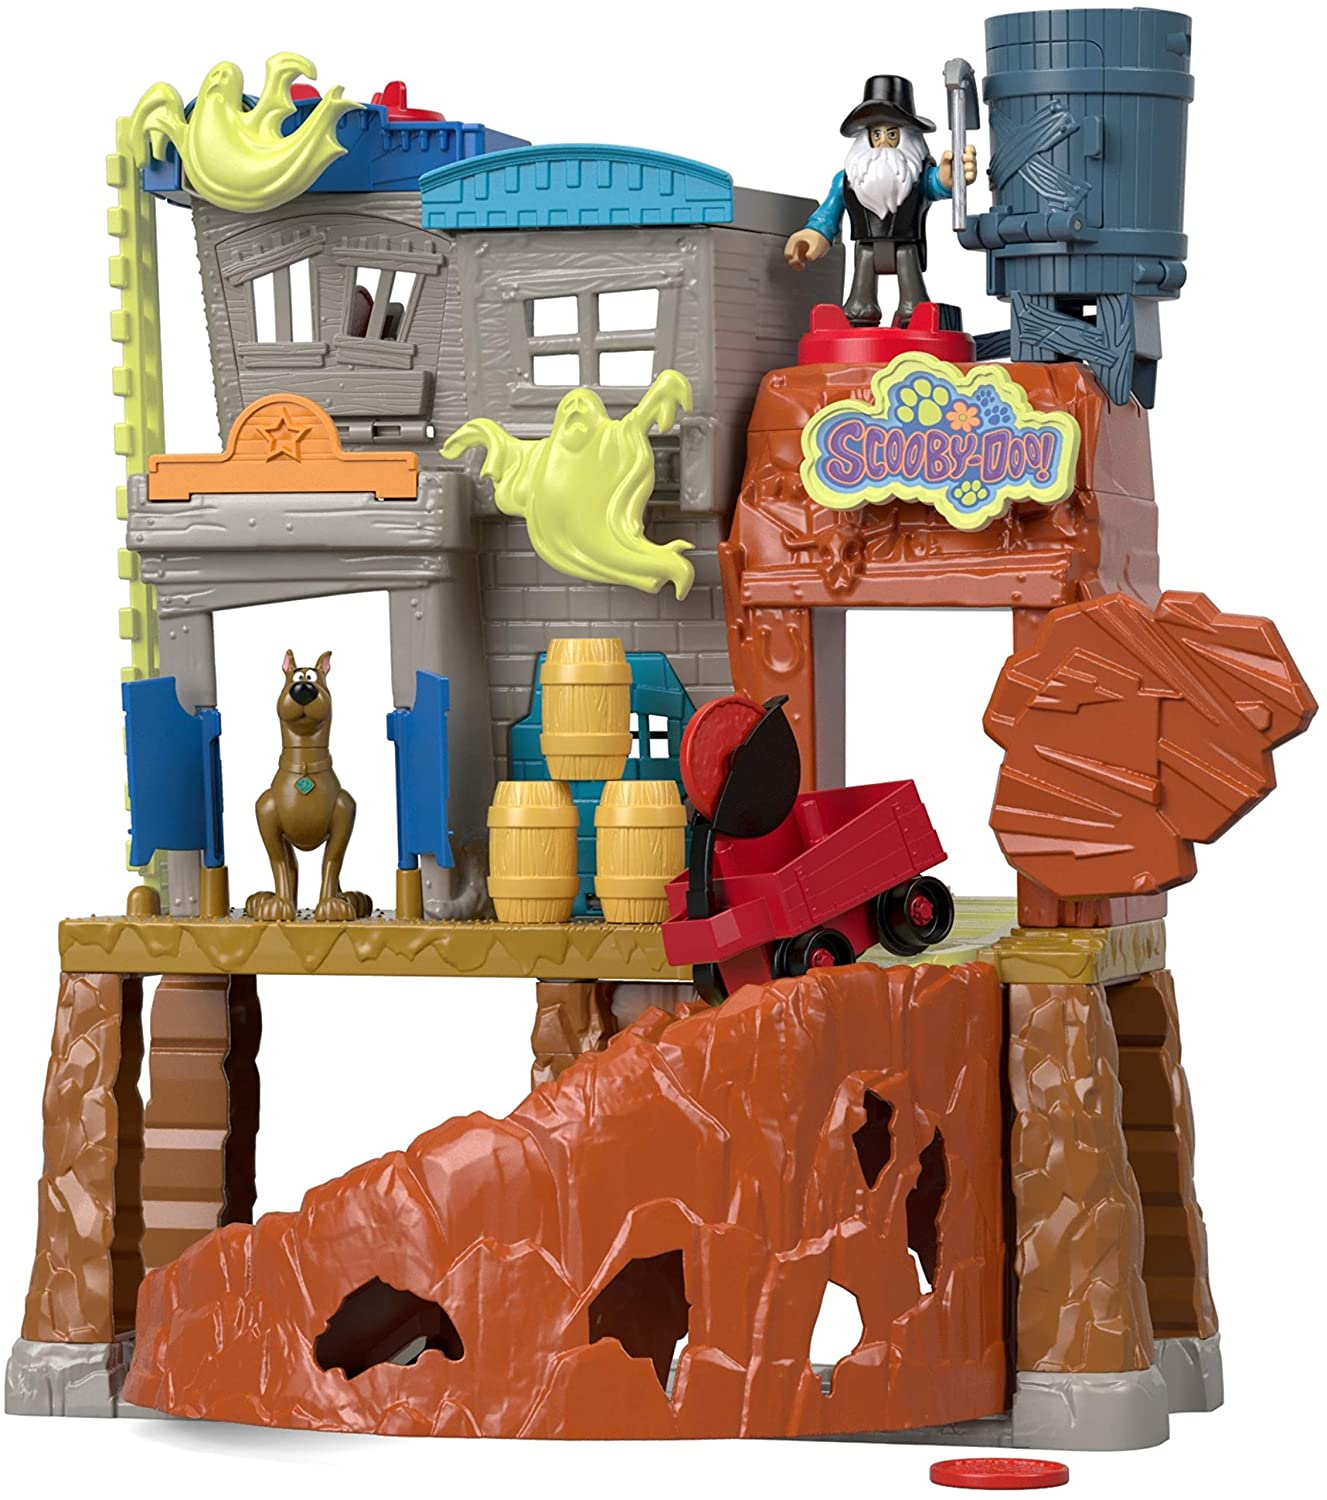 Fisher Price Imaginext Scooby-Doo Haunted Ghost Town, Multi Color FMX96